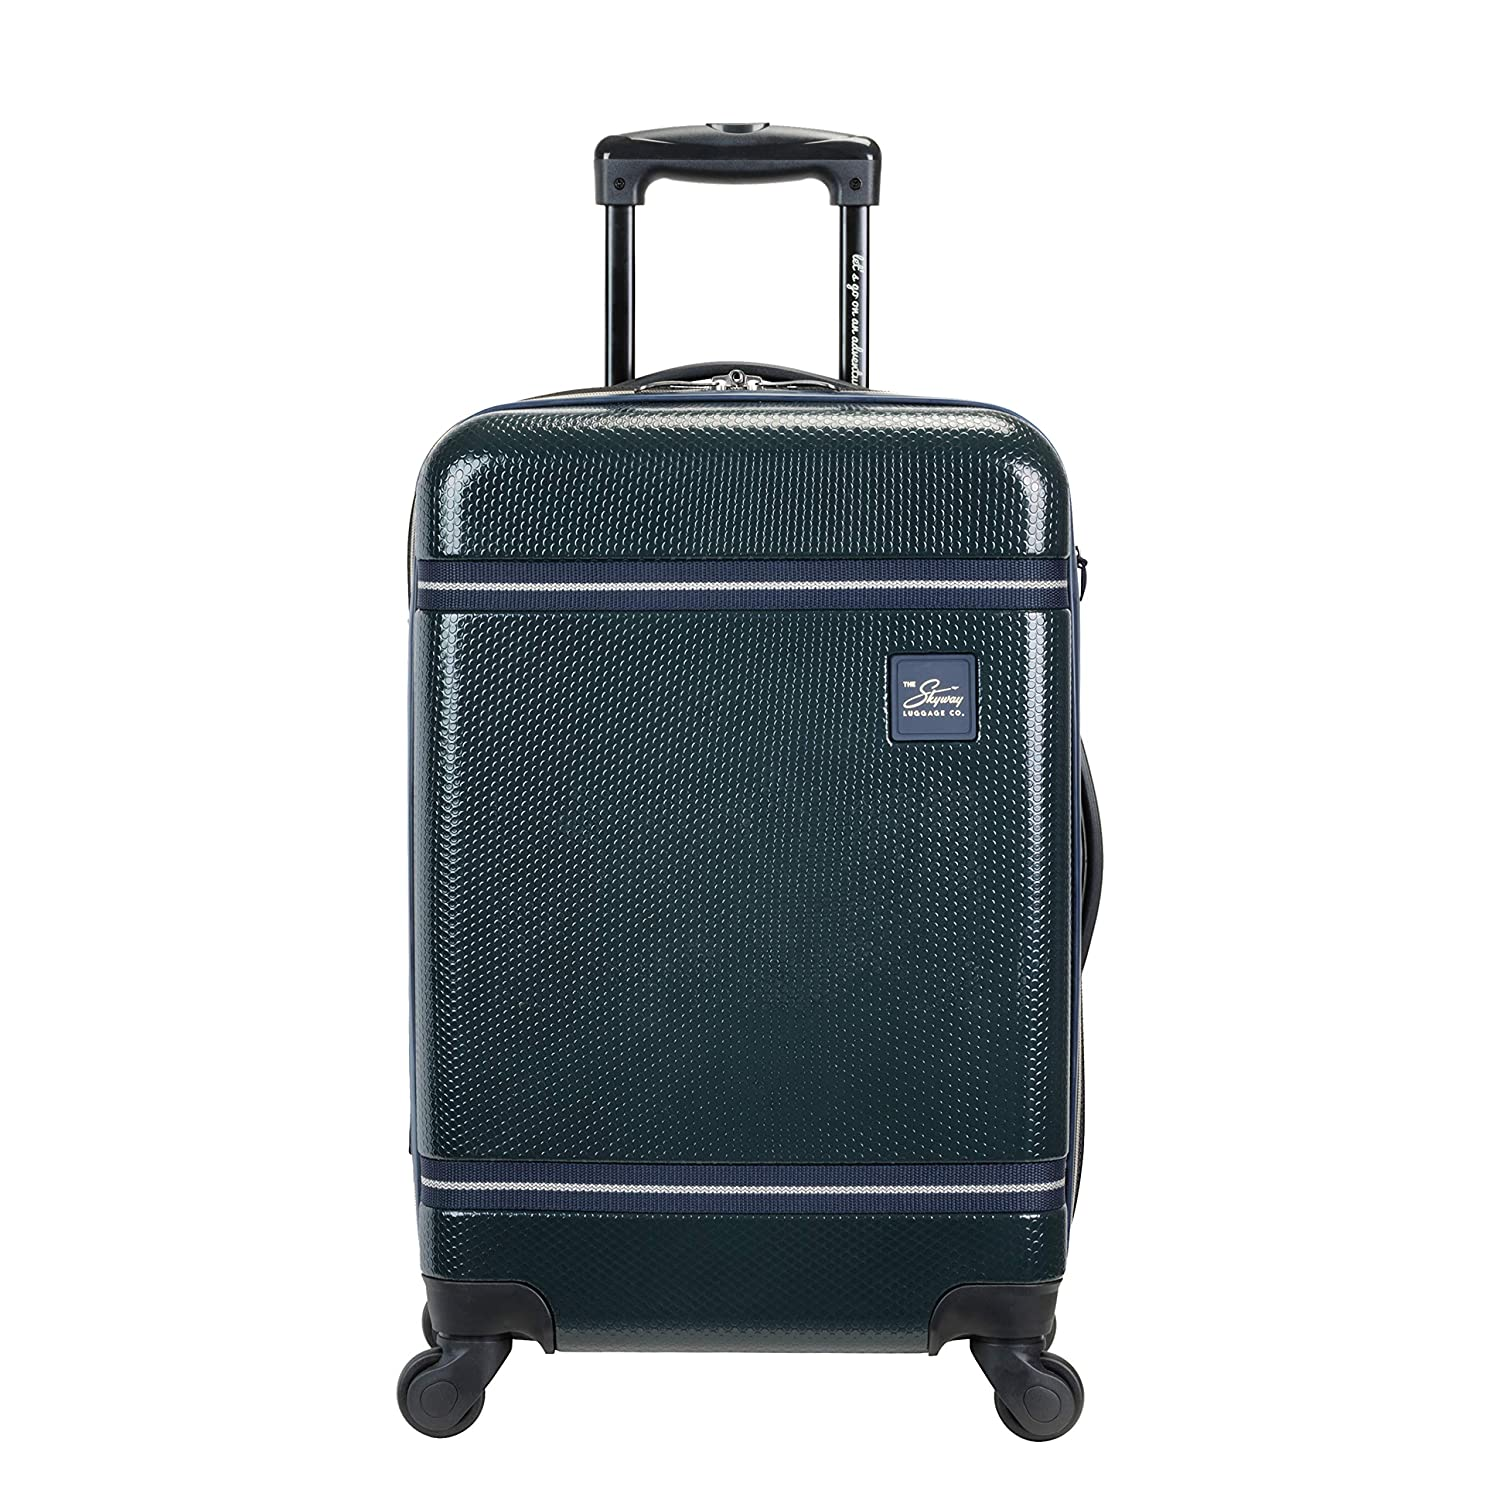 Skyway Portage Bay Carry on, 20-Inch